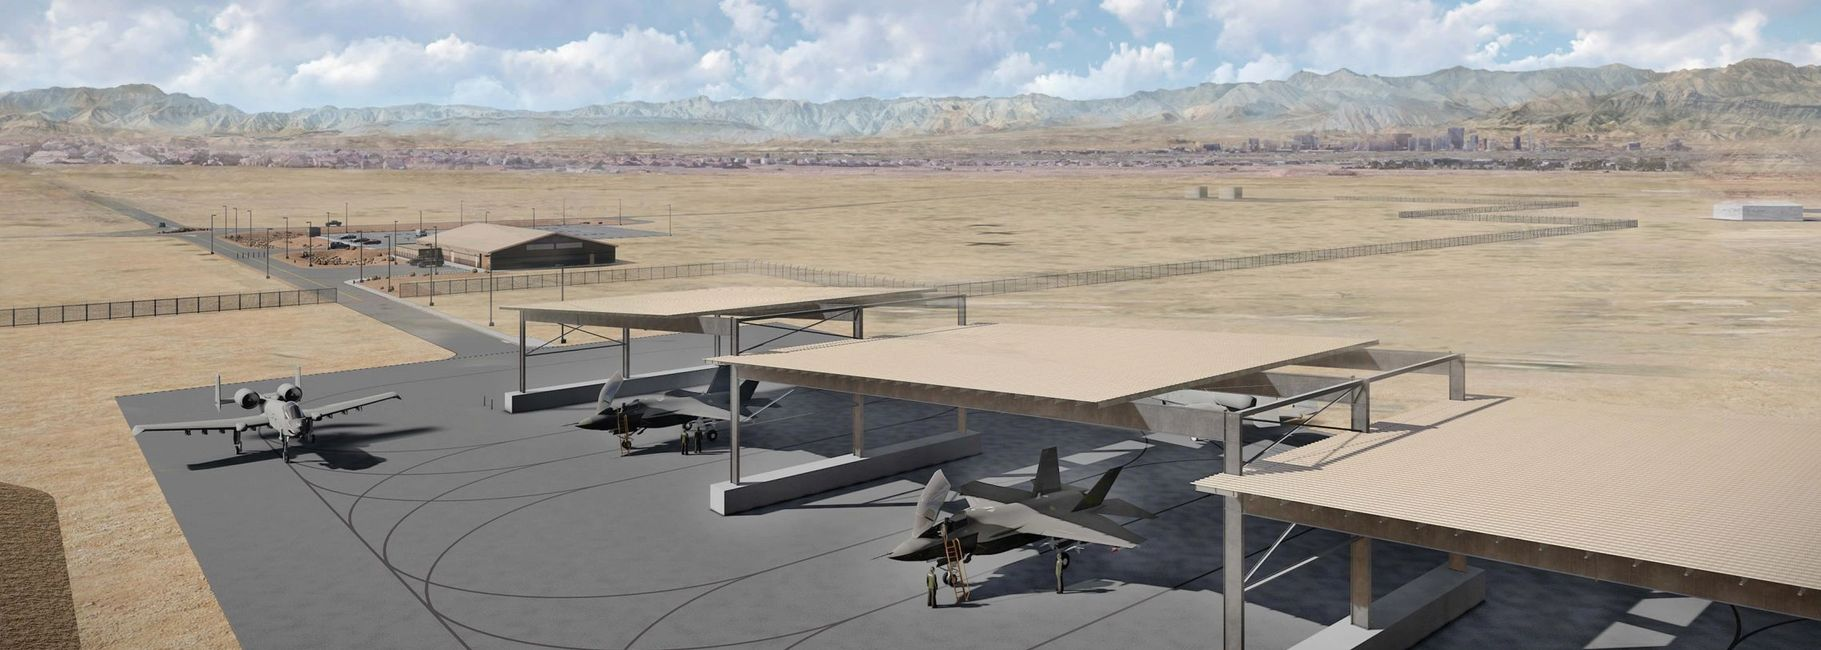 A10 Warthog and F35A Lightning prepare for flight at Nellis Air Force Base, renderings done by WERK